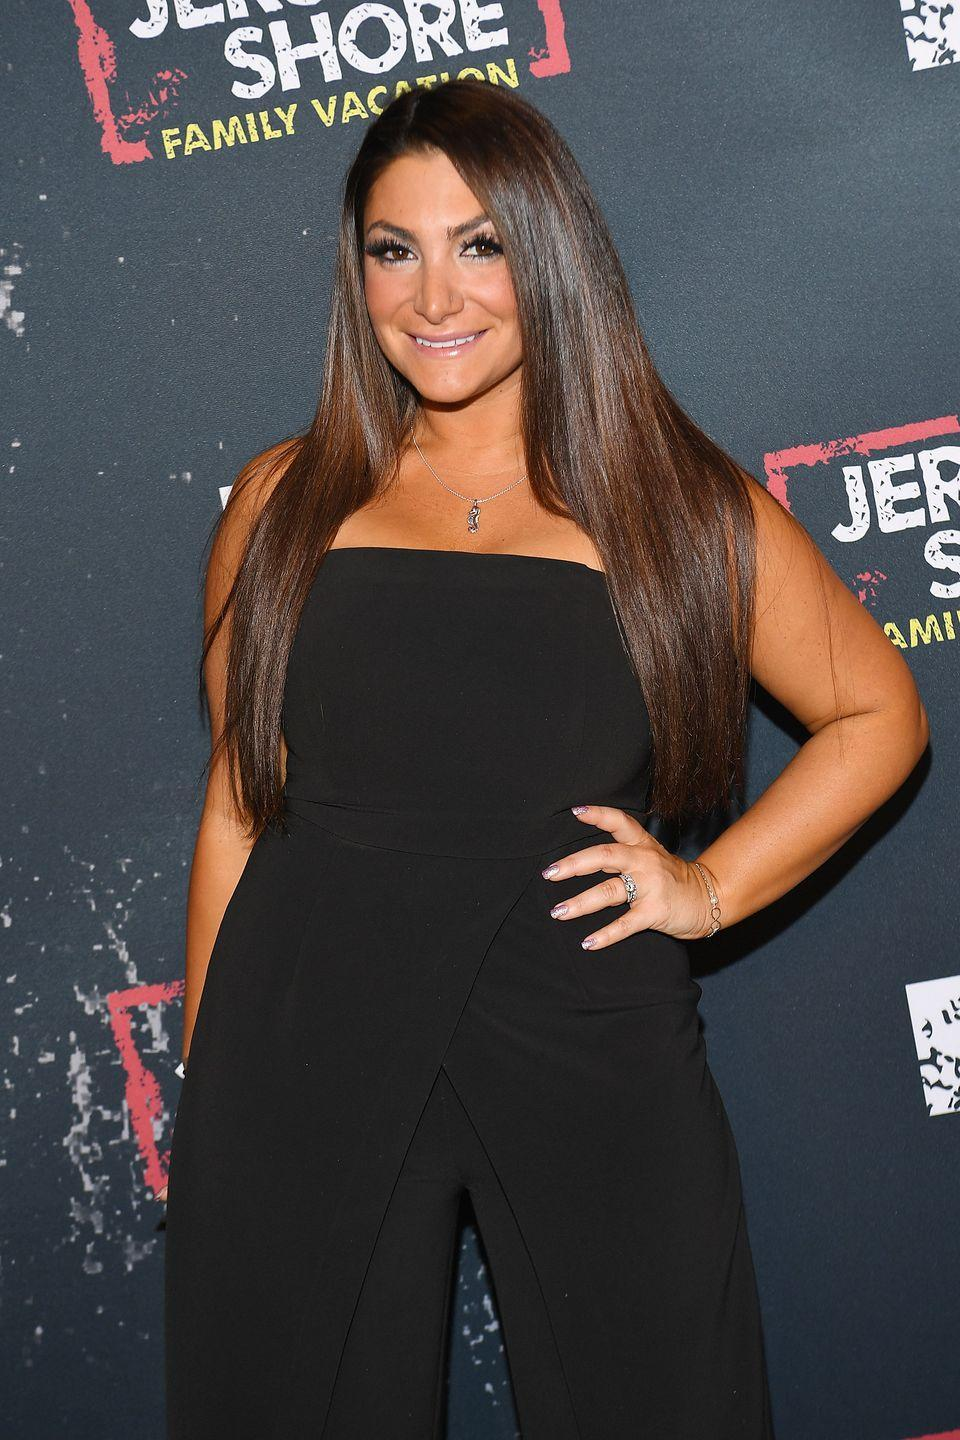 """<p>Deena appeared only on later seasons of<em> Jersey Shore</em>, but she's still reaping the financial benefits. <a href=""""https://www.celebritynetworth.com/richest-celebrities/deena-nicole-cortese-net-worth/"""" rel=""""nofollow noopener"""" target=""""_blank"""" data-ylk=""""slk:Celebrity Net Worth"""" class=""""link rapid-noclick-resp""""><em>Celebrity Net Worth</em></a> estimates she's worth a cool $2 million, and <a href=""""https://radaronline.com/exclusives/2012/06/jersey-shore-stars-earnings-how-much-do-they-make/"""" rel=""""nofollow noopener"""" target=""""_blank"""" data-ylk=""""slk:Radar Online"""" class=""""link rapid-noclick-resp""""><em>Radar Online</em></a> reports she made around $40,000 per episode. I'd take it. </p>"""